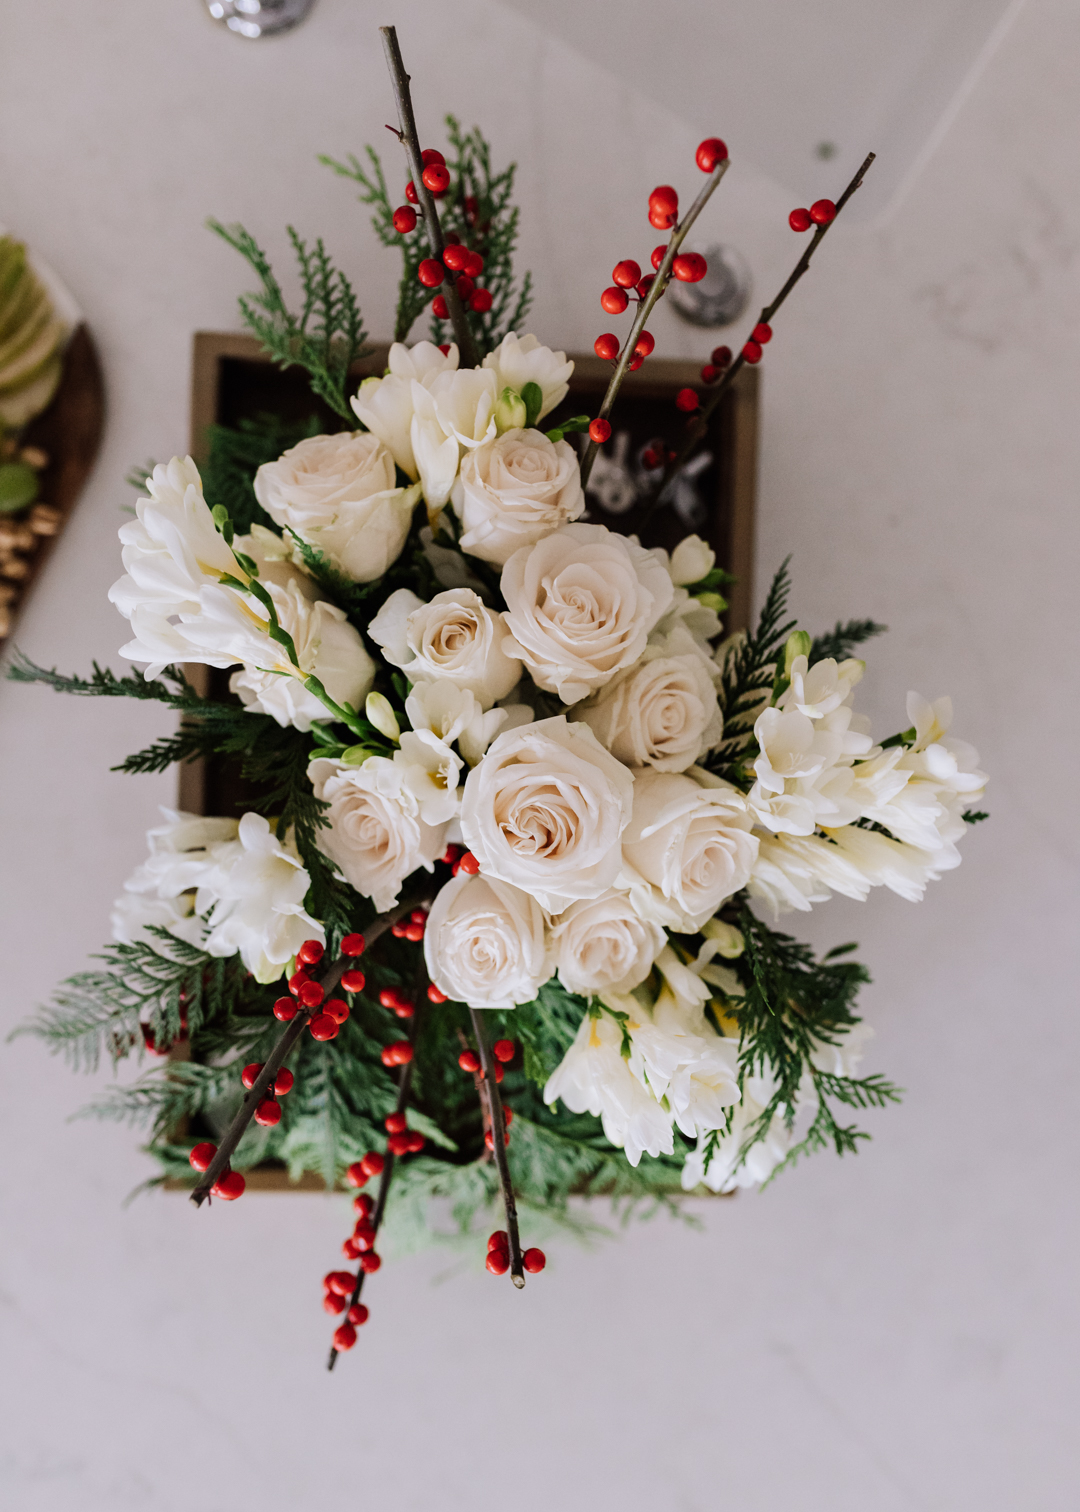 gorgeous DIY holiday flowers for a simple holiday party | thelovedesignedlife.com #holidayparty #flowers #christmas #gingerbreaddecorating